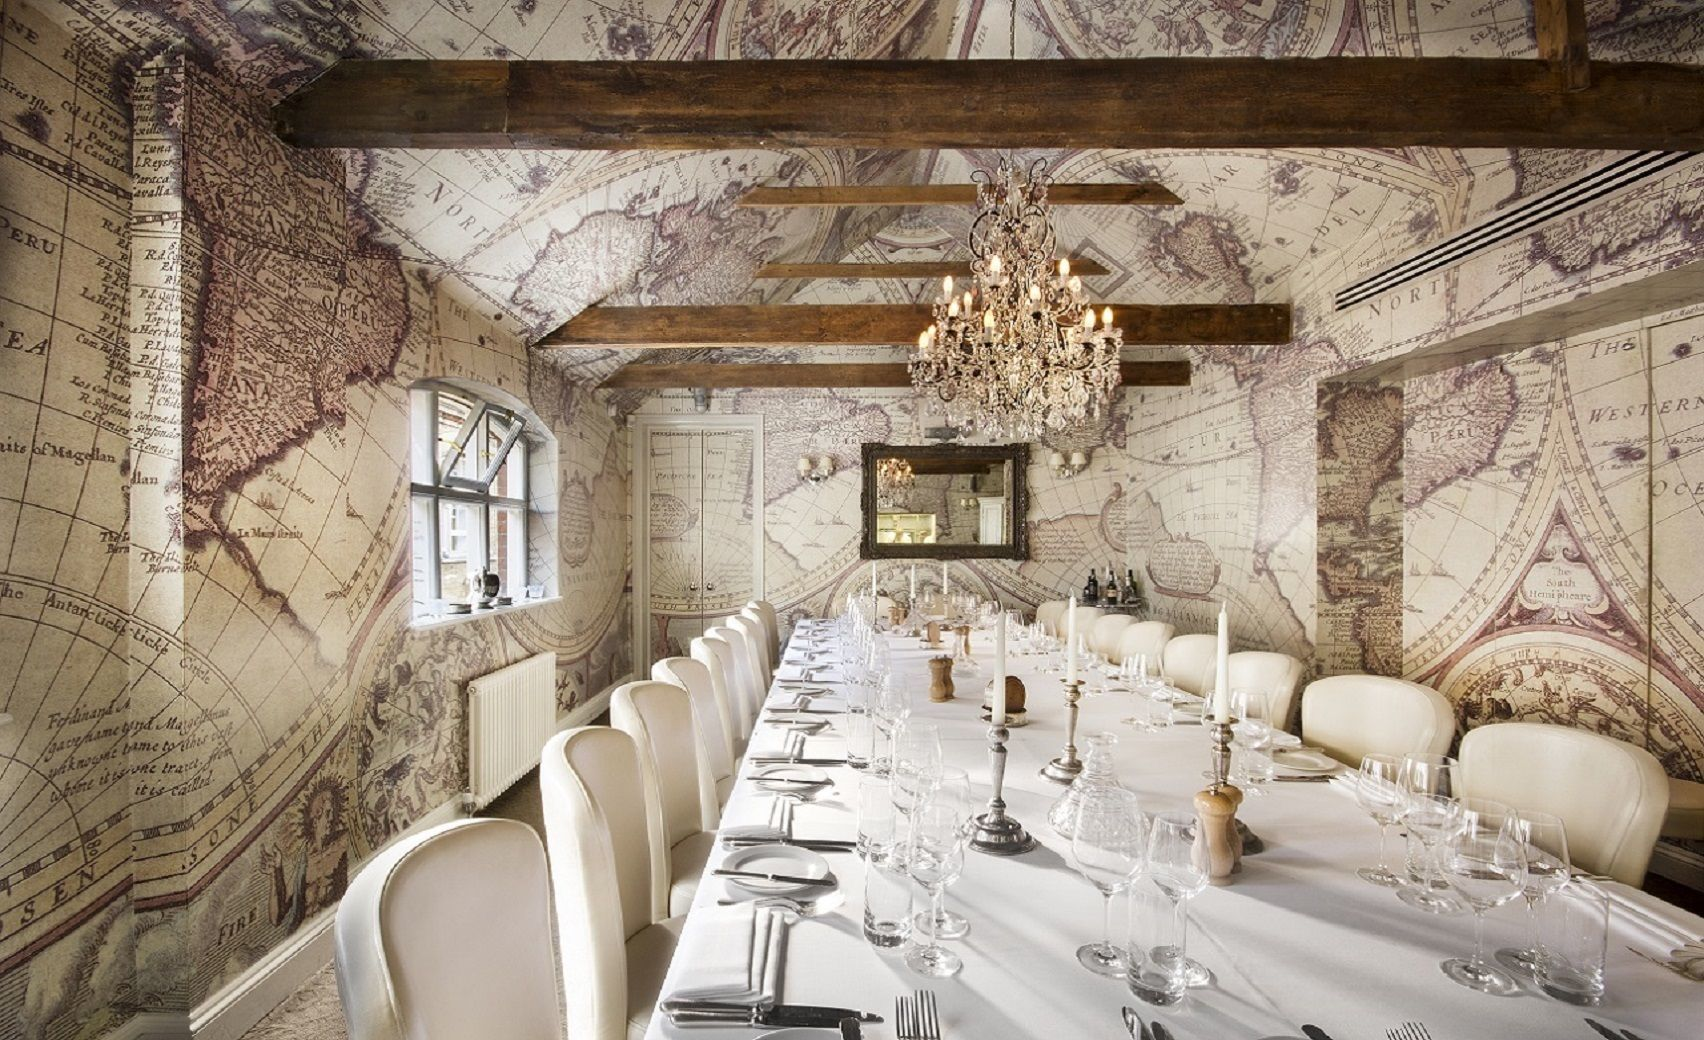 Chef's Private Dining Room, Mews of Mayfair